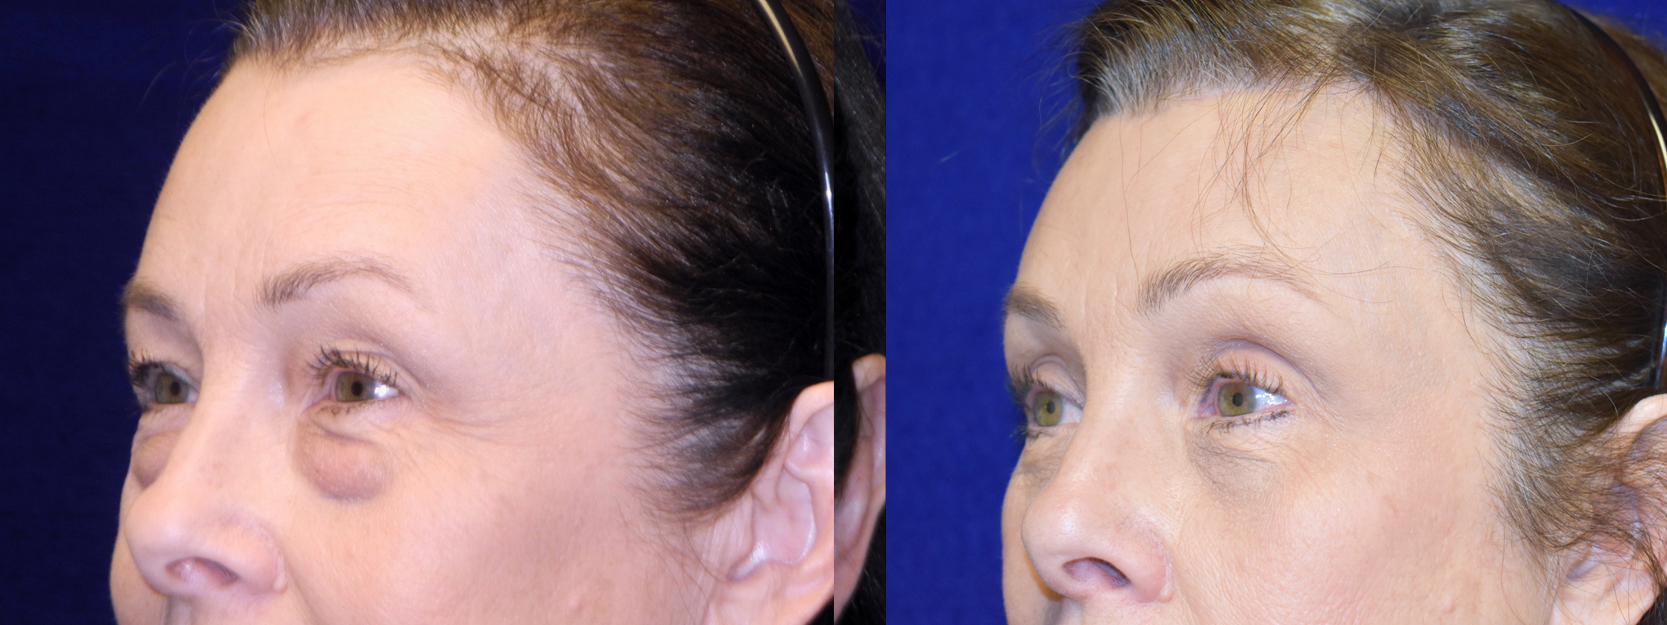 Left 3/4 View - Browlift with Upper and Lower Blepharoplasty